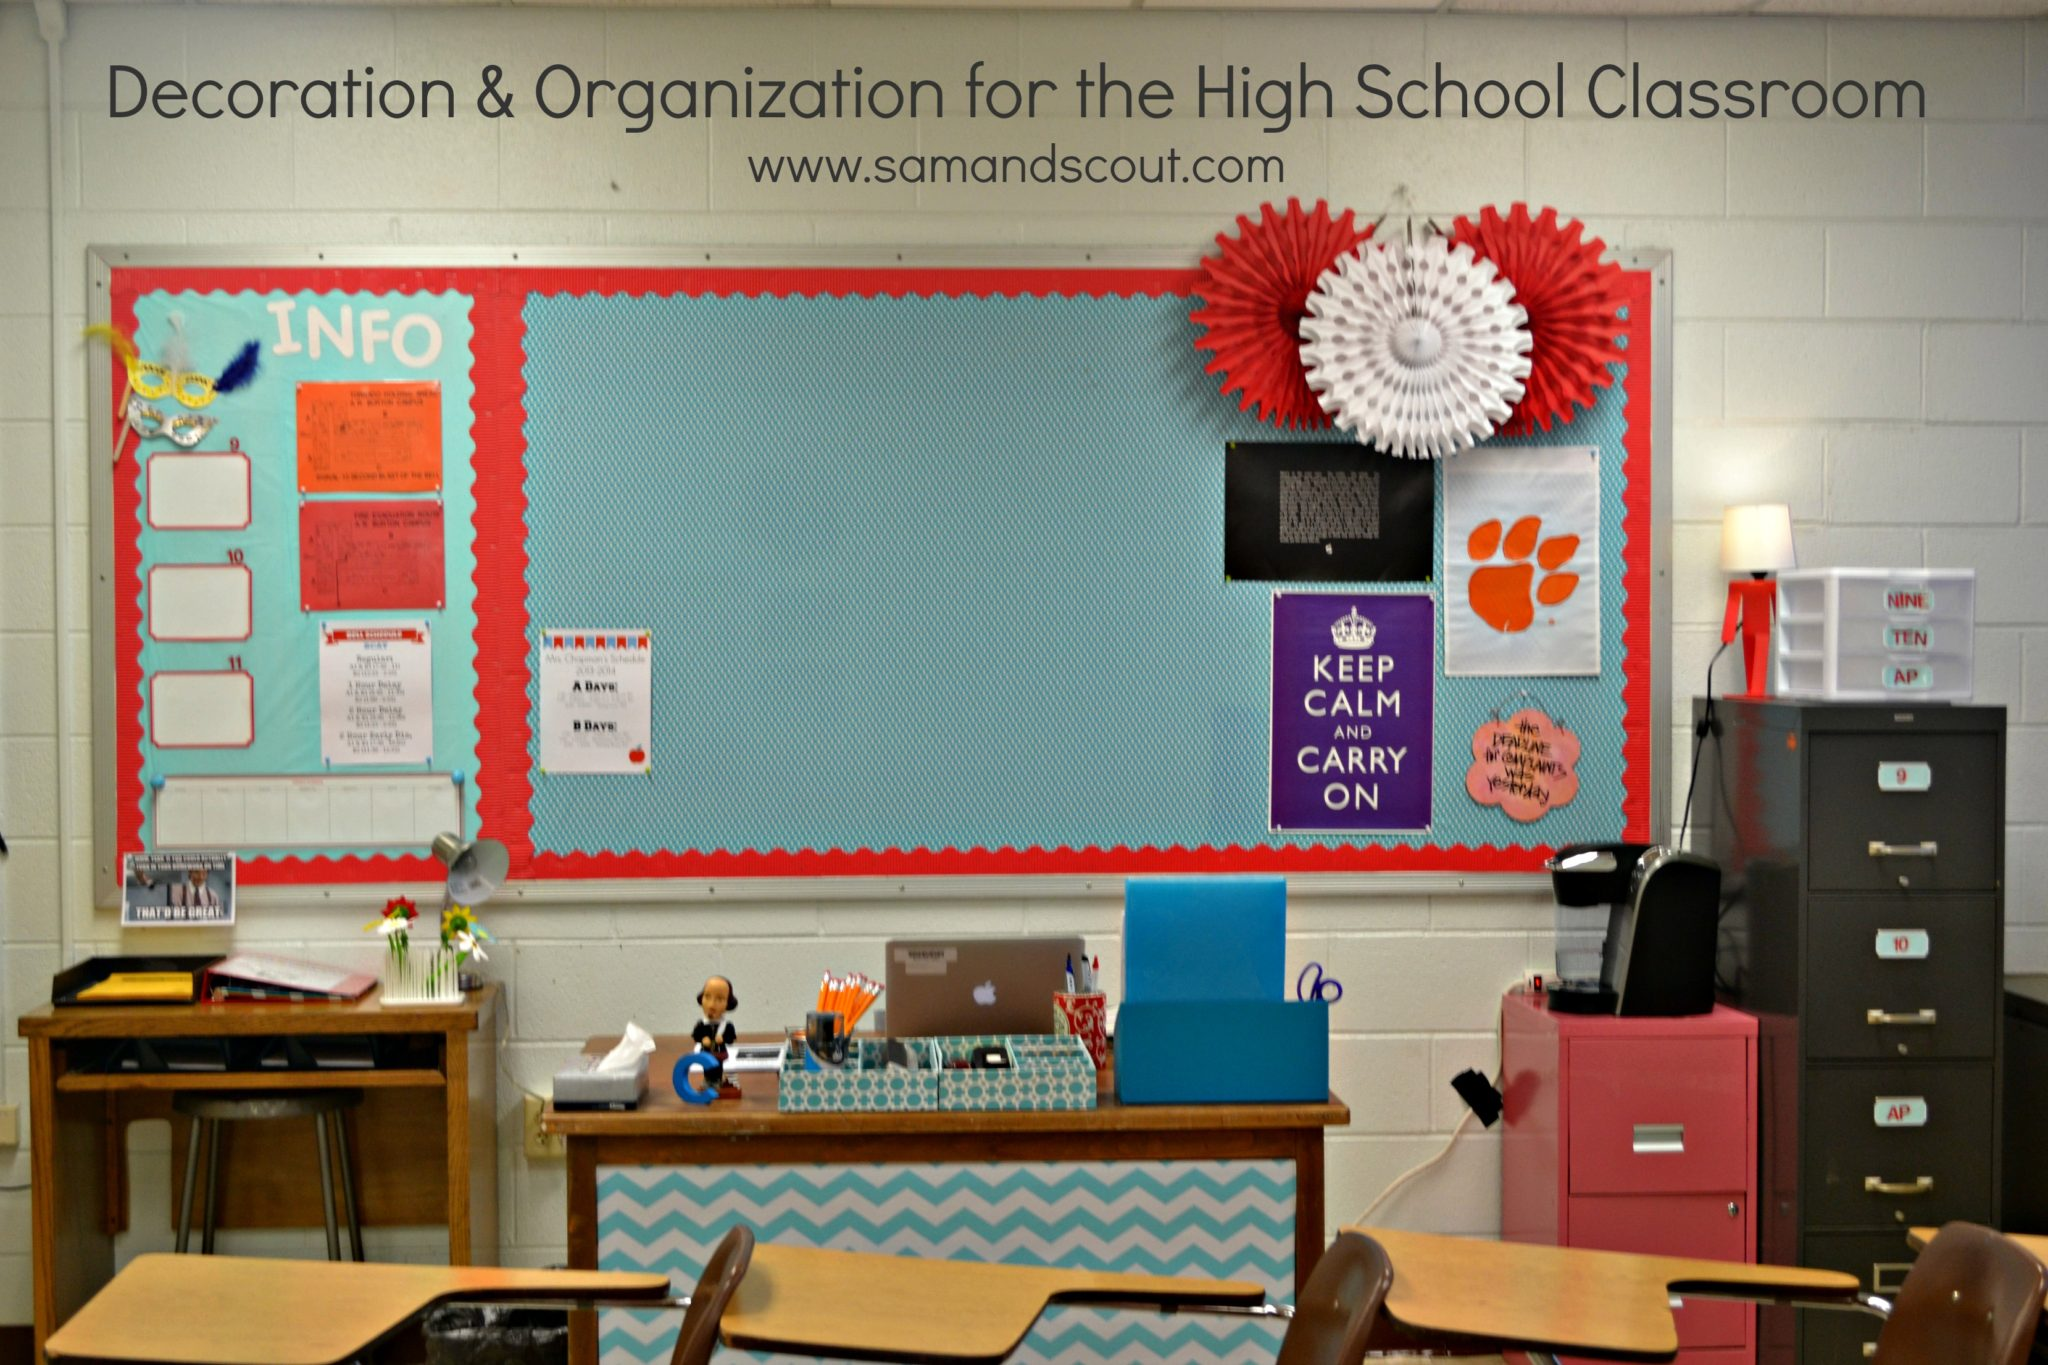 Classroom Decor And Ideas ~ Decoration organization for the high school classroom